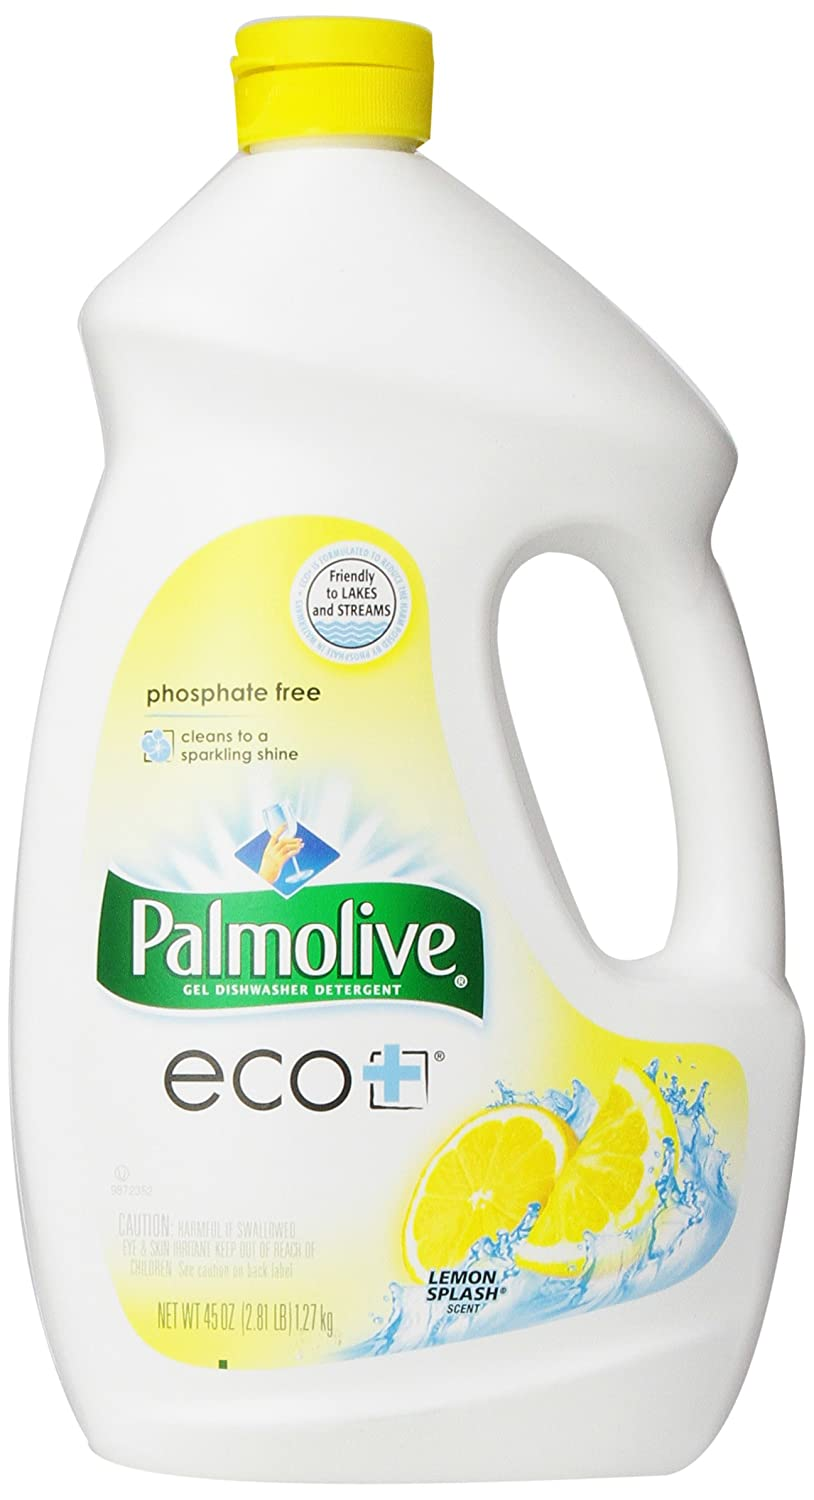 Amazoncom Palmolive Eco Gel Dishwasher Detergent Lemon Splash